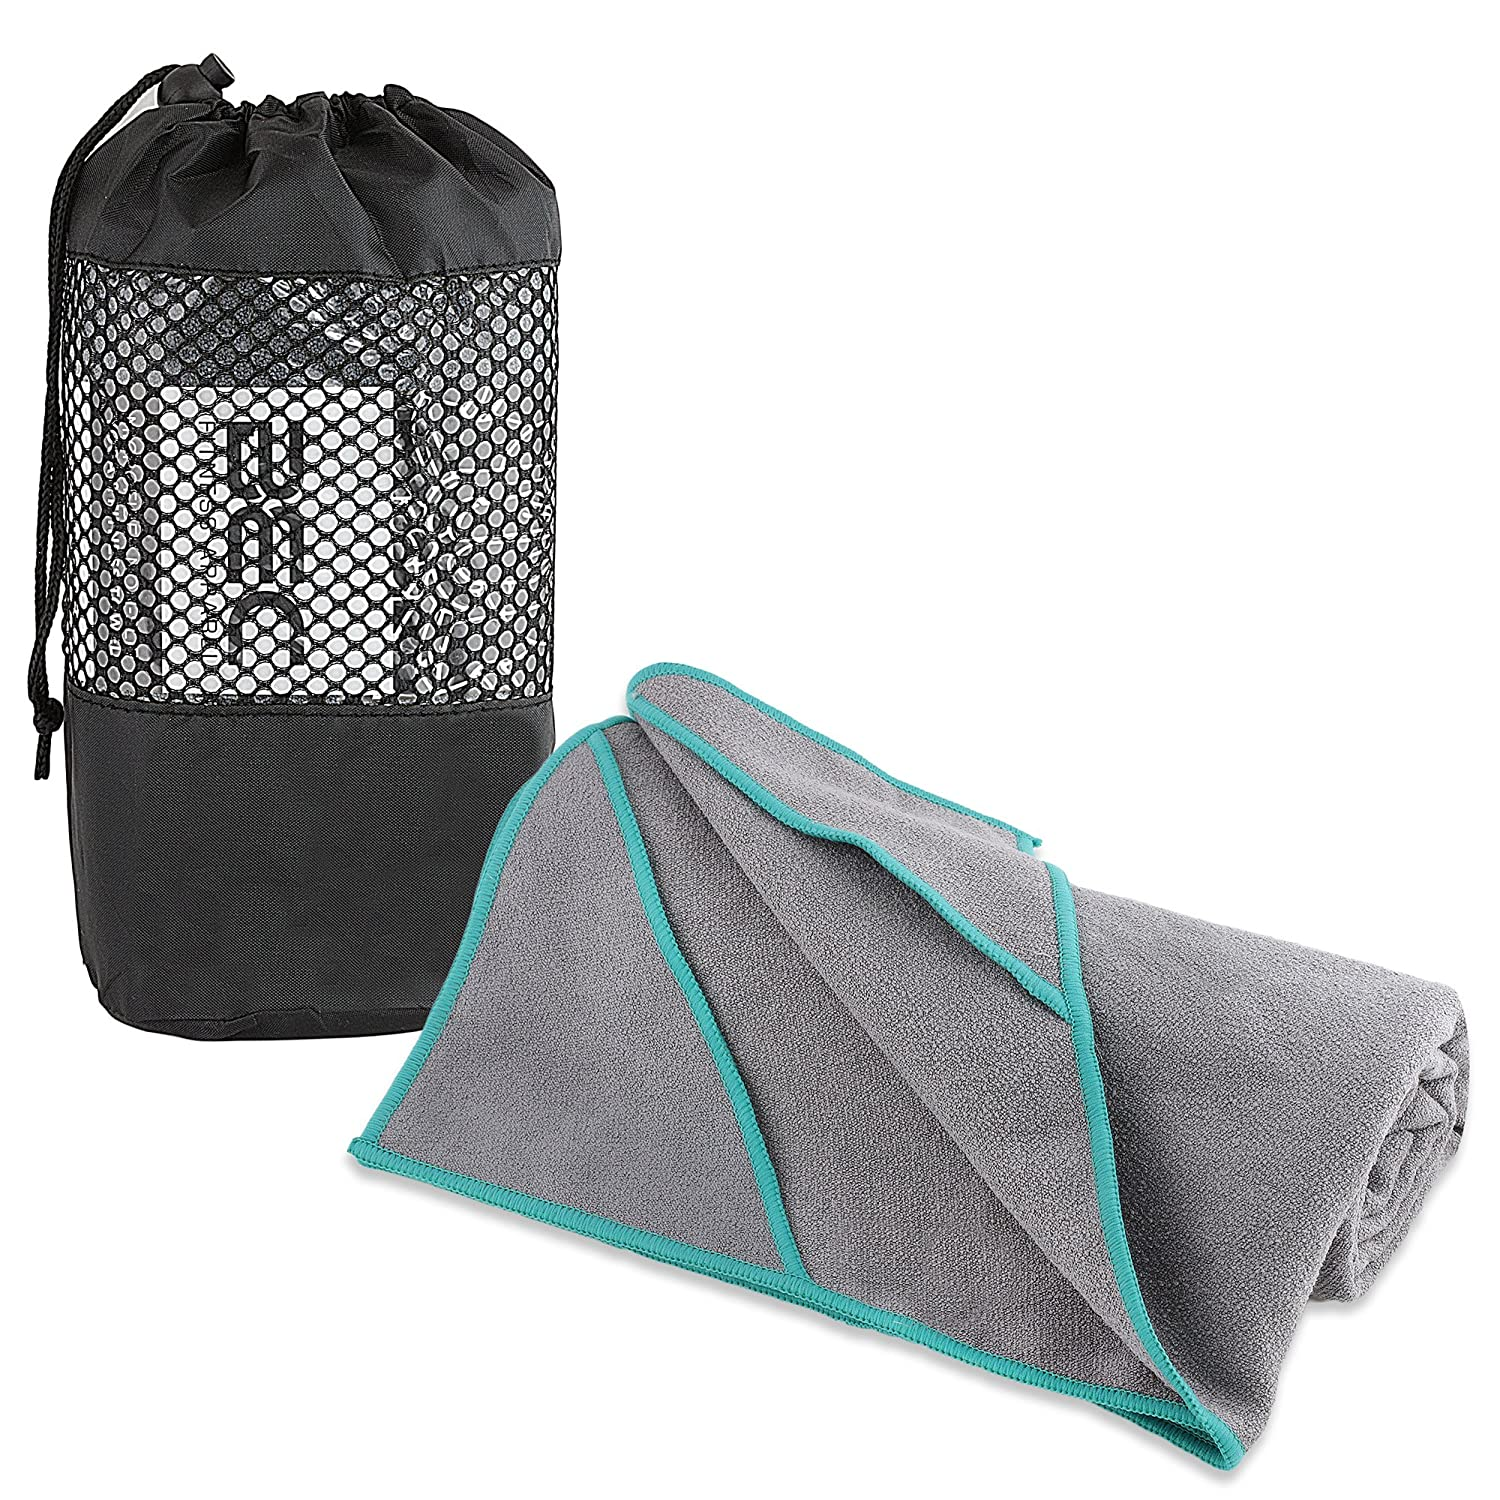 Yoga Towel for Bikram Hot Yoga or Any Type Of Yoga By Bec Fitness Apparel. Enjoy A Skidless, Peaceful Practice On Your Mat With Our Non Slip Corners That Provide Grip. (72 X 24)